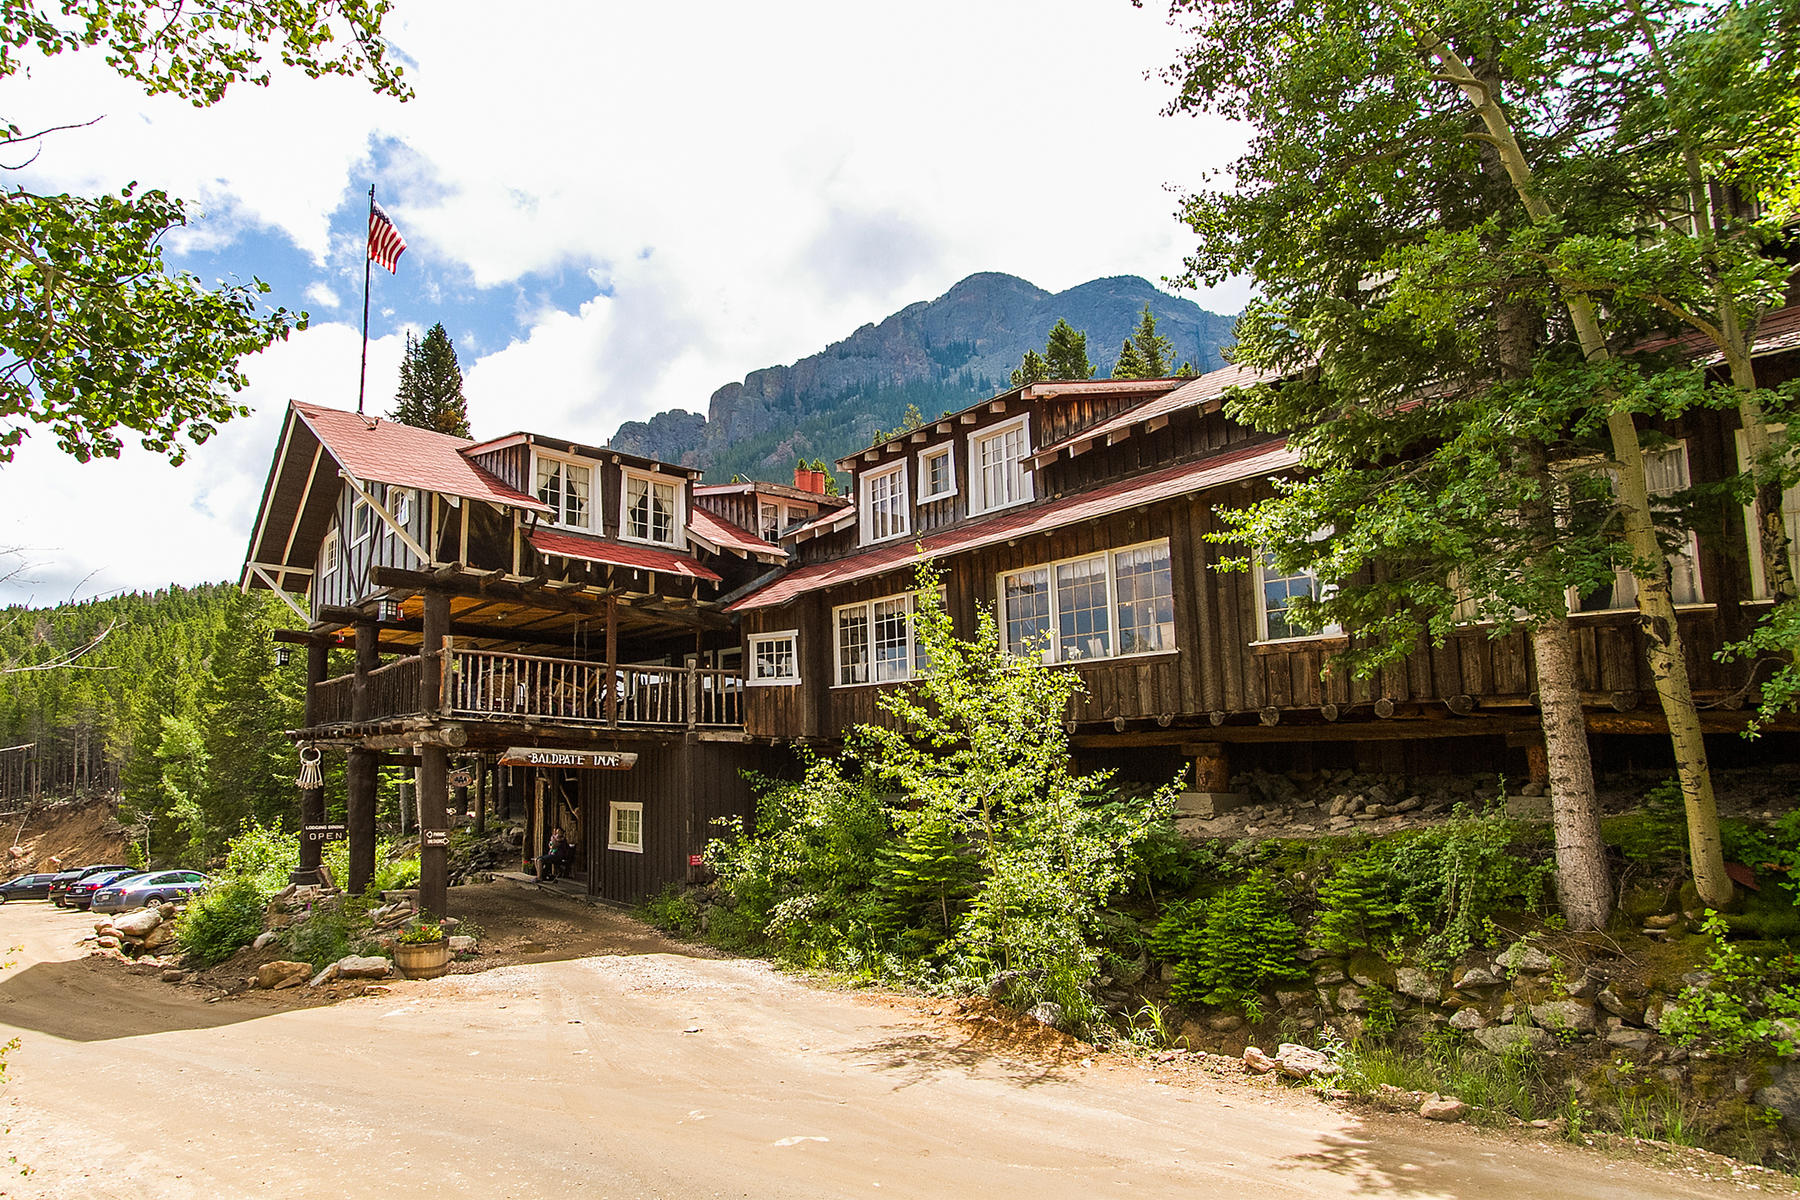 Single Family Home for Active at The Baldpate Inn 4900 Highway 7 Estes Park, Colorado 80517 United States